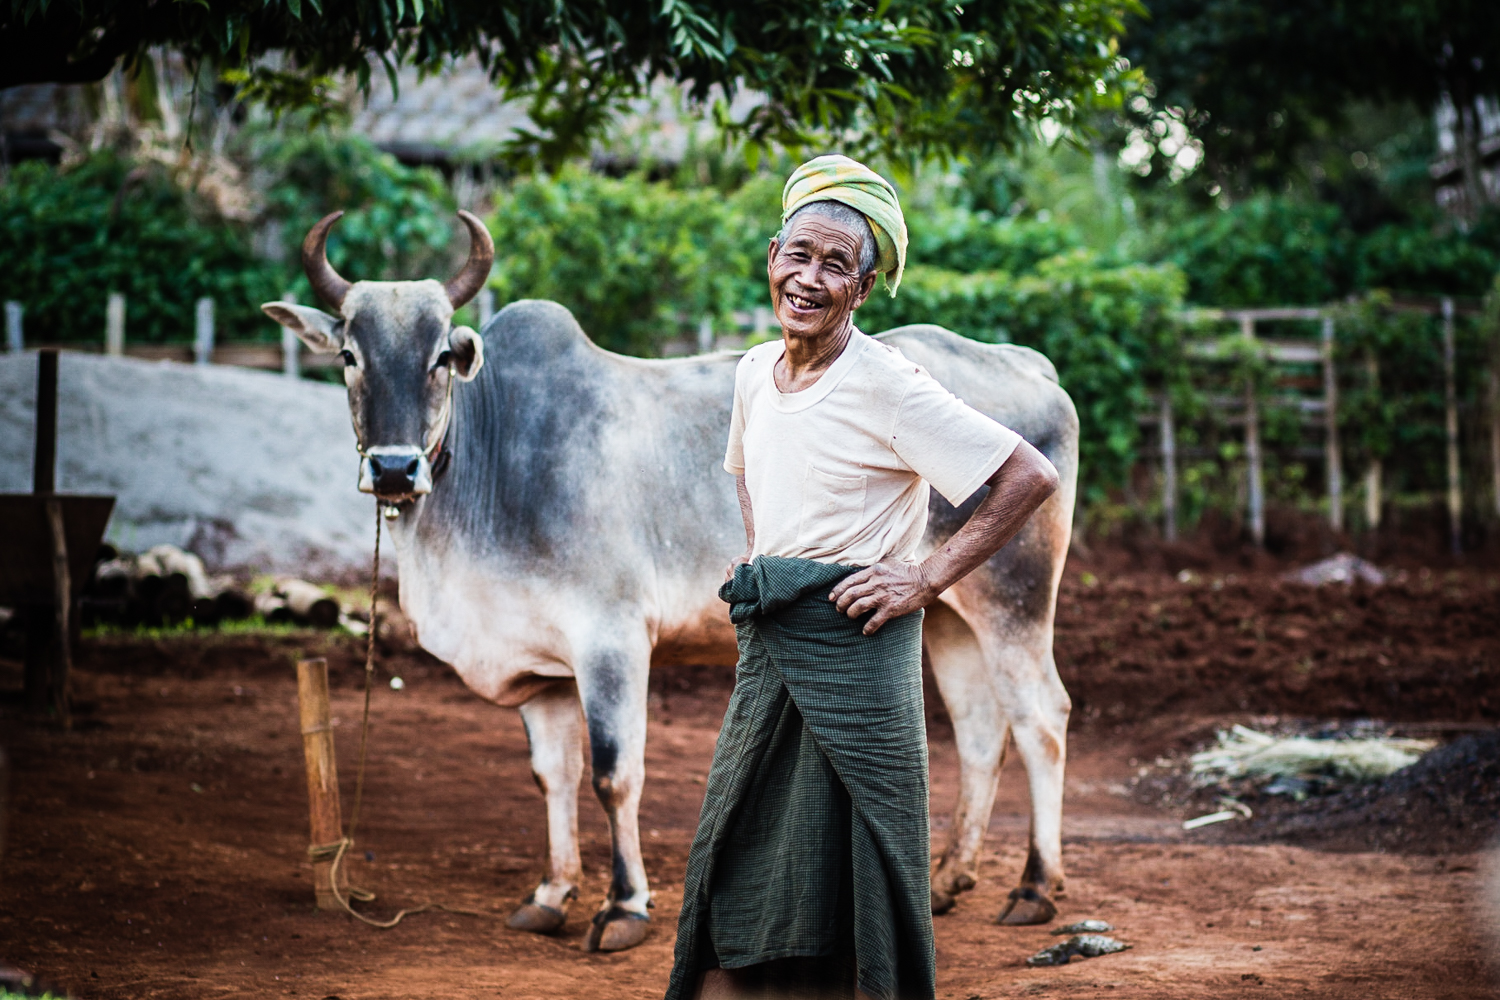 Most of the villagers in the area are subsistence farmer famers. Cows are used for labor in lieu of meat or milk.